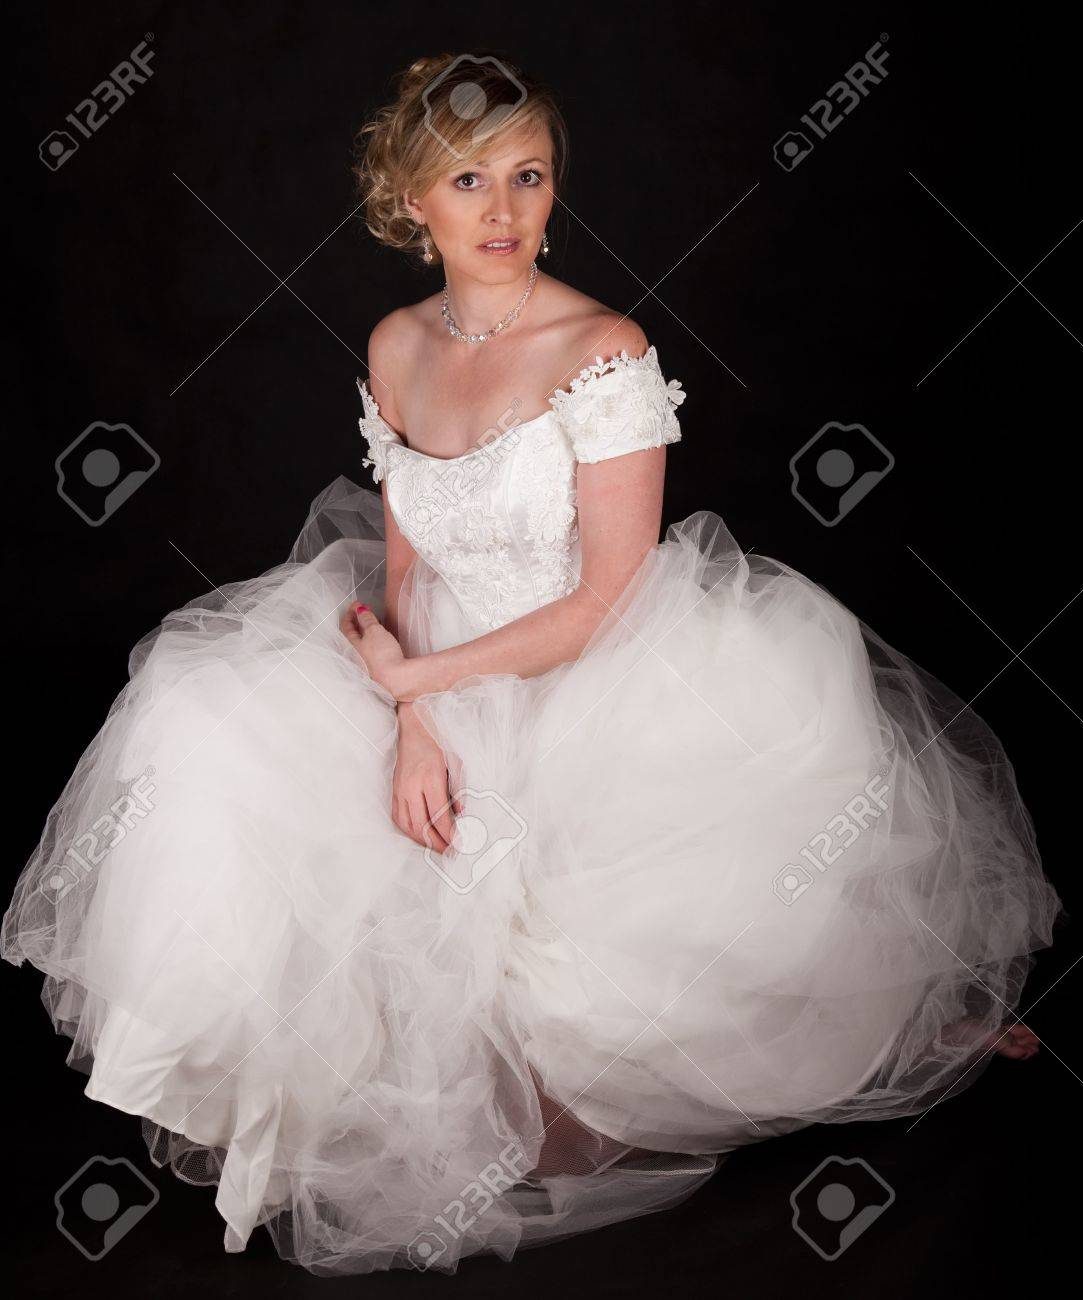 Attractive Blond Woman Wearing White Wedding Gown With Wide ...